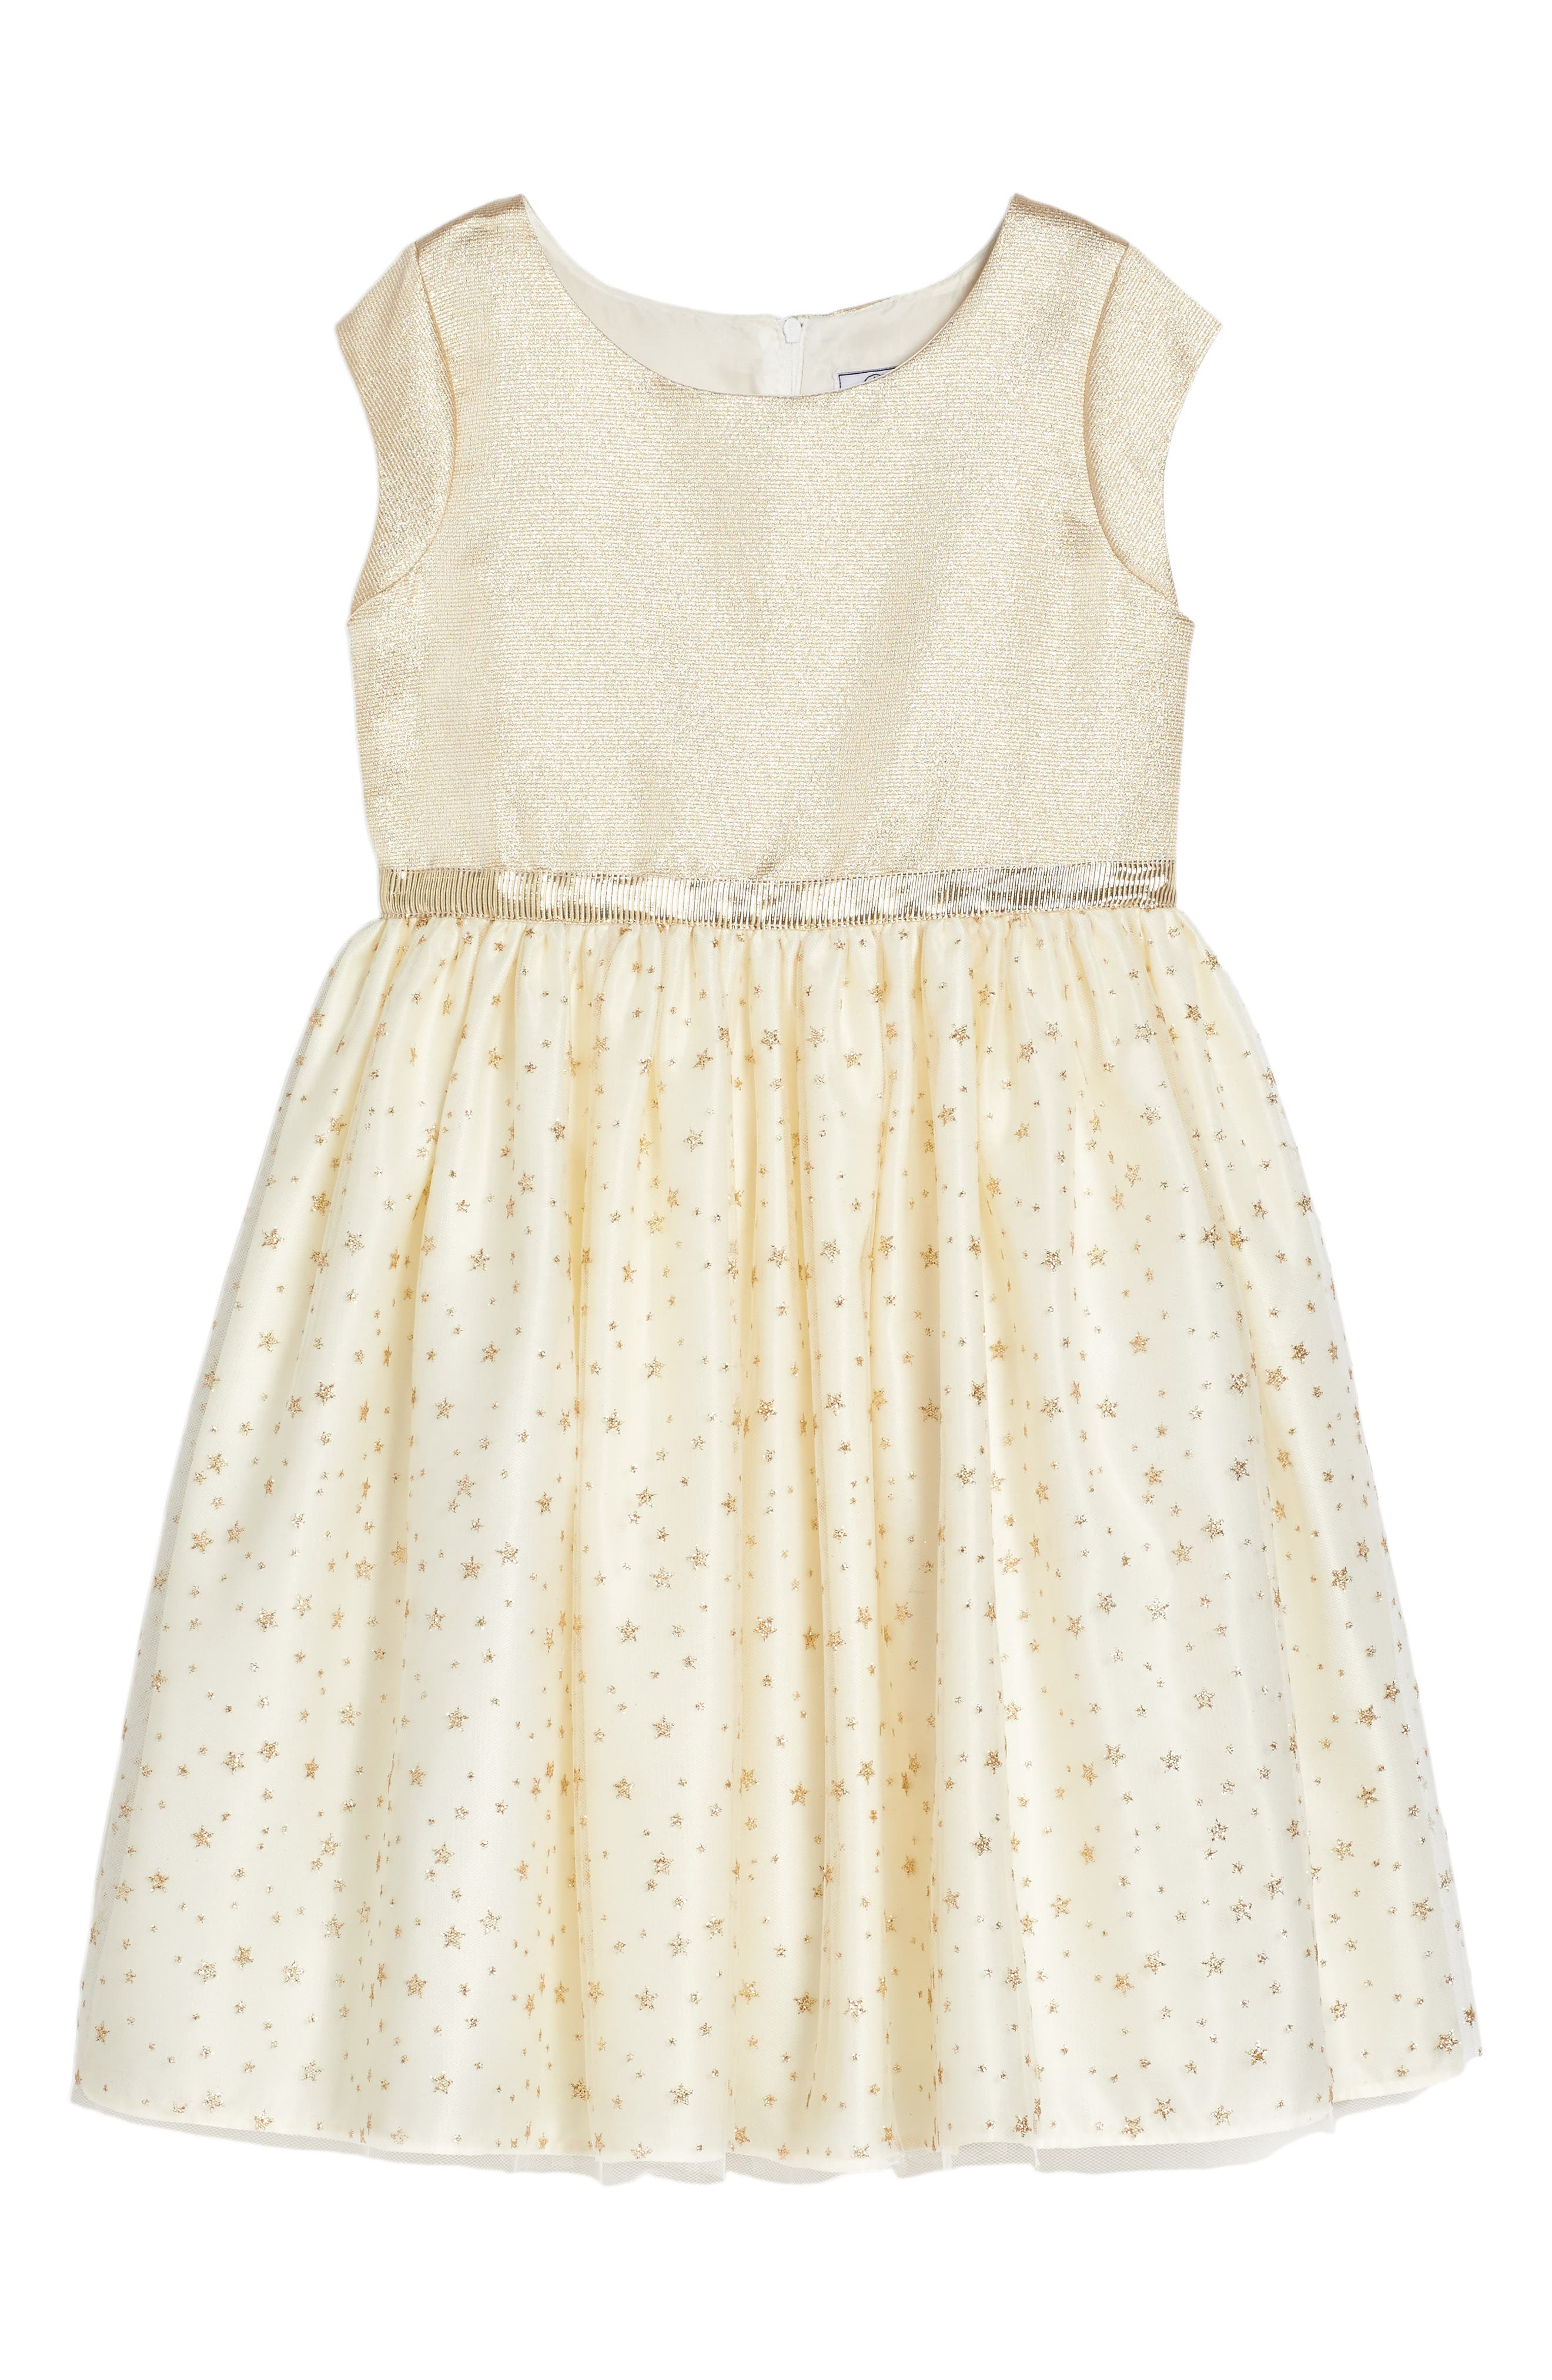 Dorissa Kelly Dress (Toddler Girls, Little Girls & Big Girls)